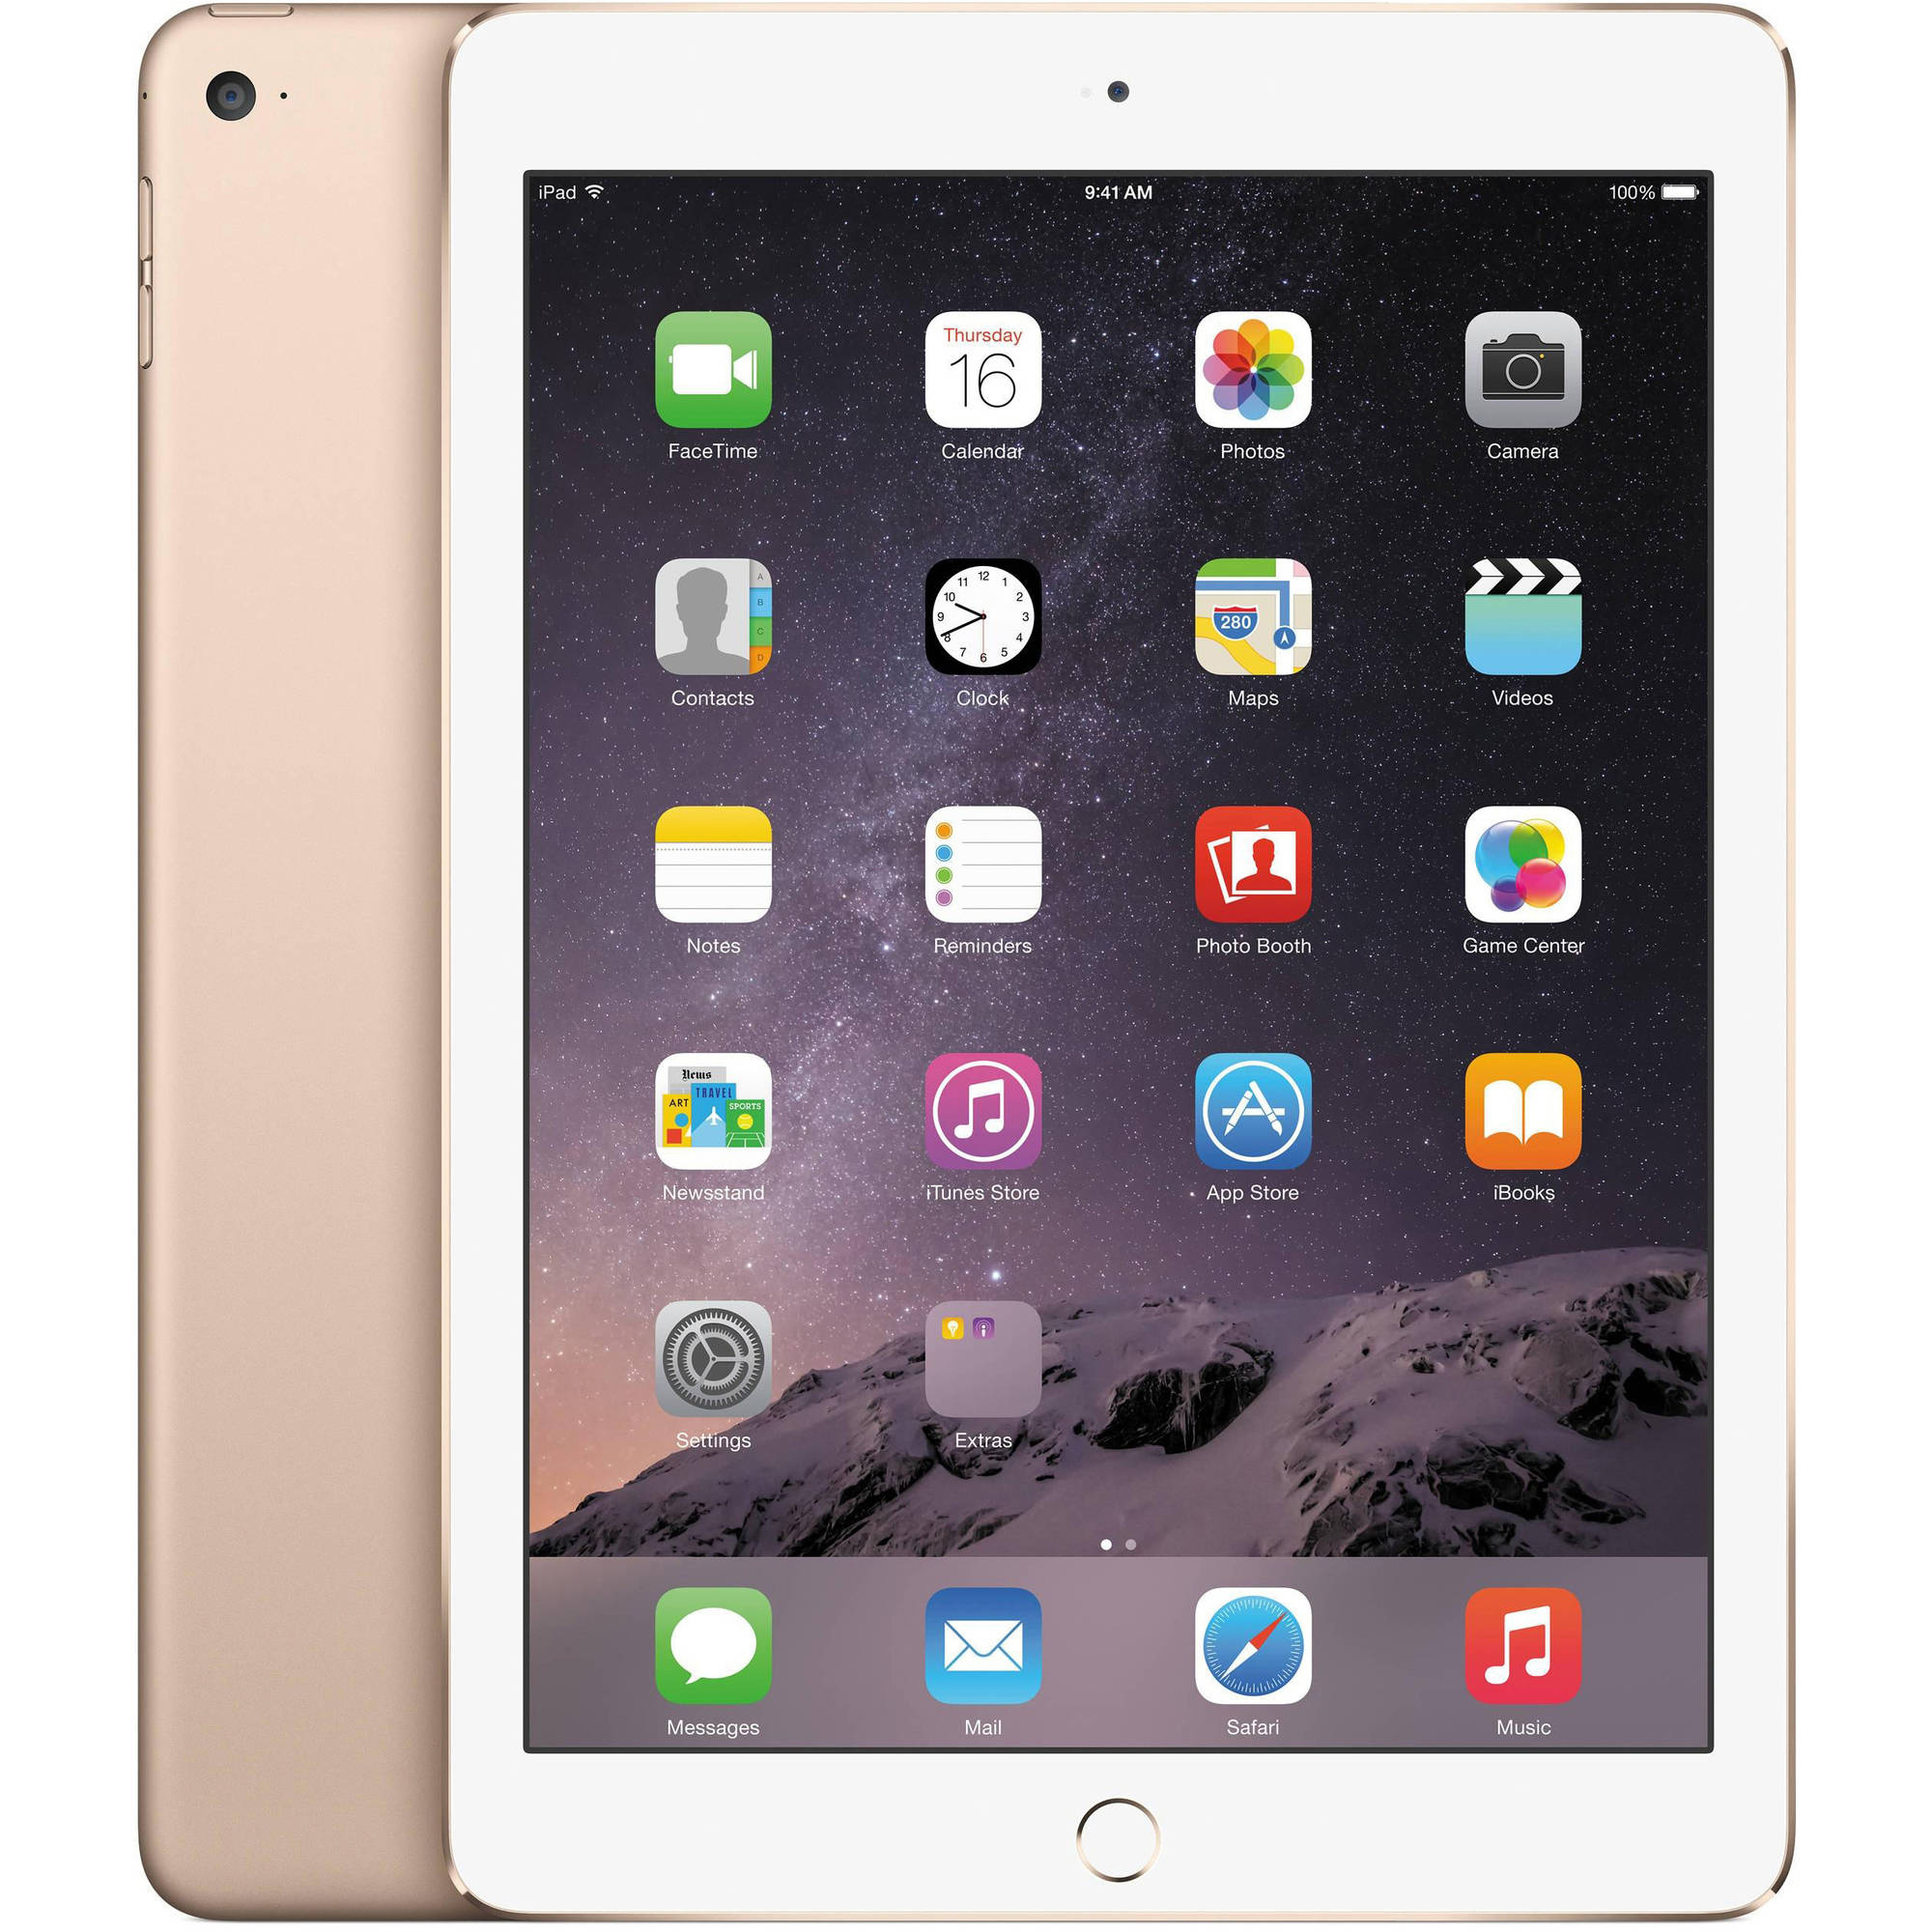 "Certified Refurbished Apple iPad Air 2 with WiFi 9.7"" Touchscreen Tablet Featuring iOS 8.1 Operating System"